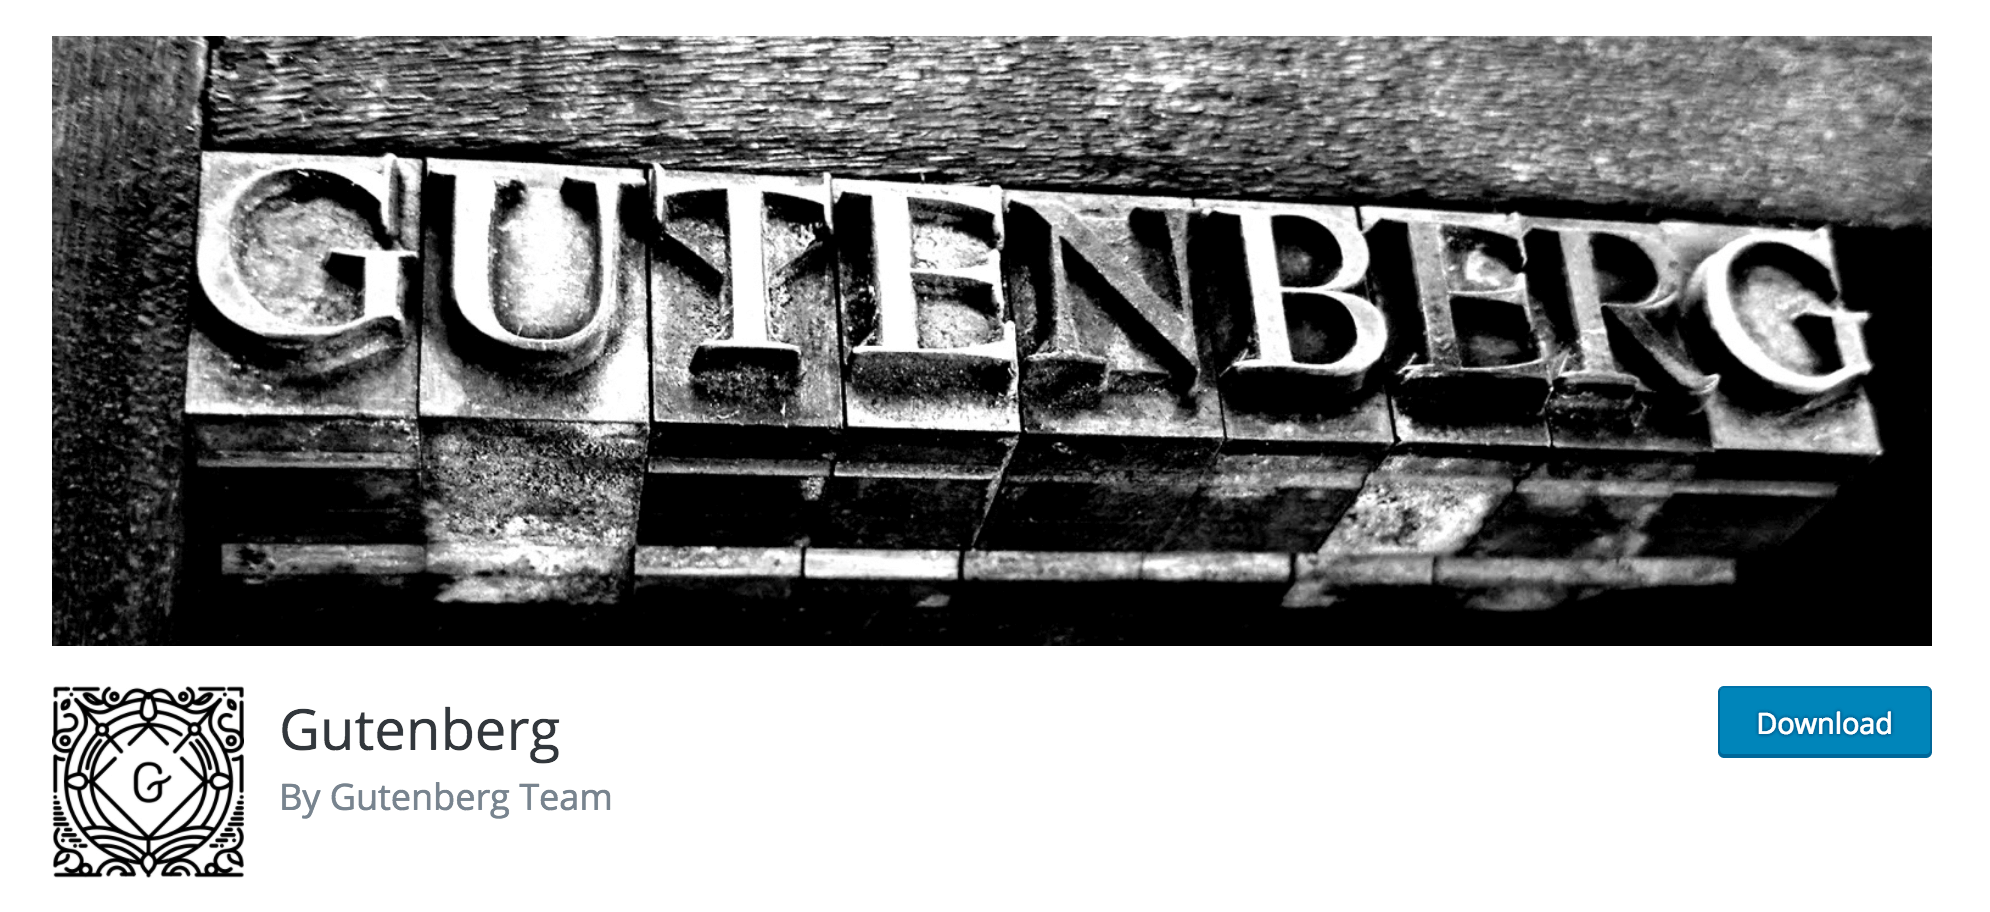 The Gutenberg WordPress plugin.